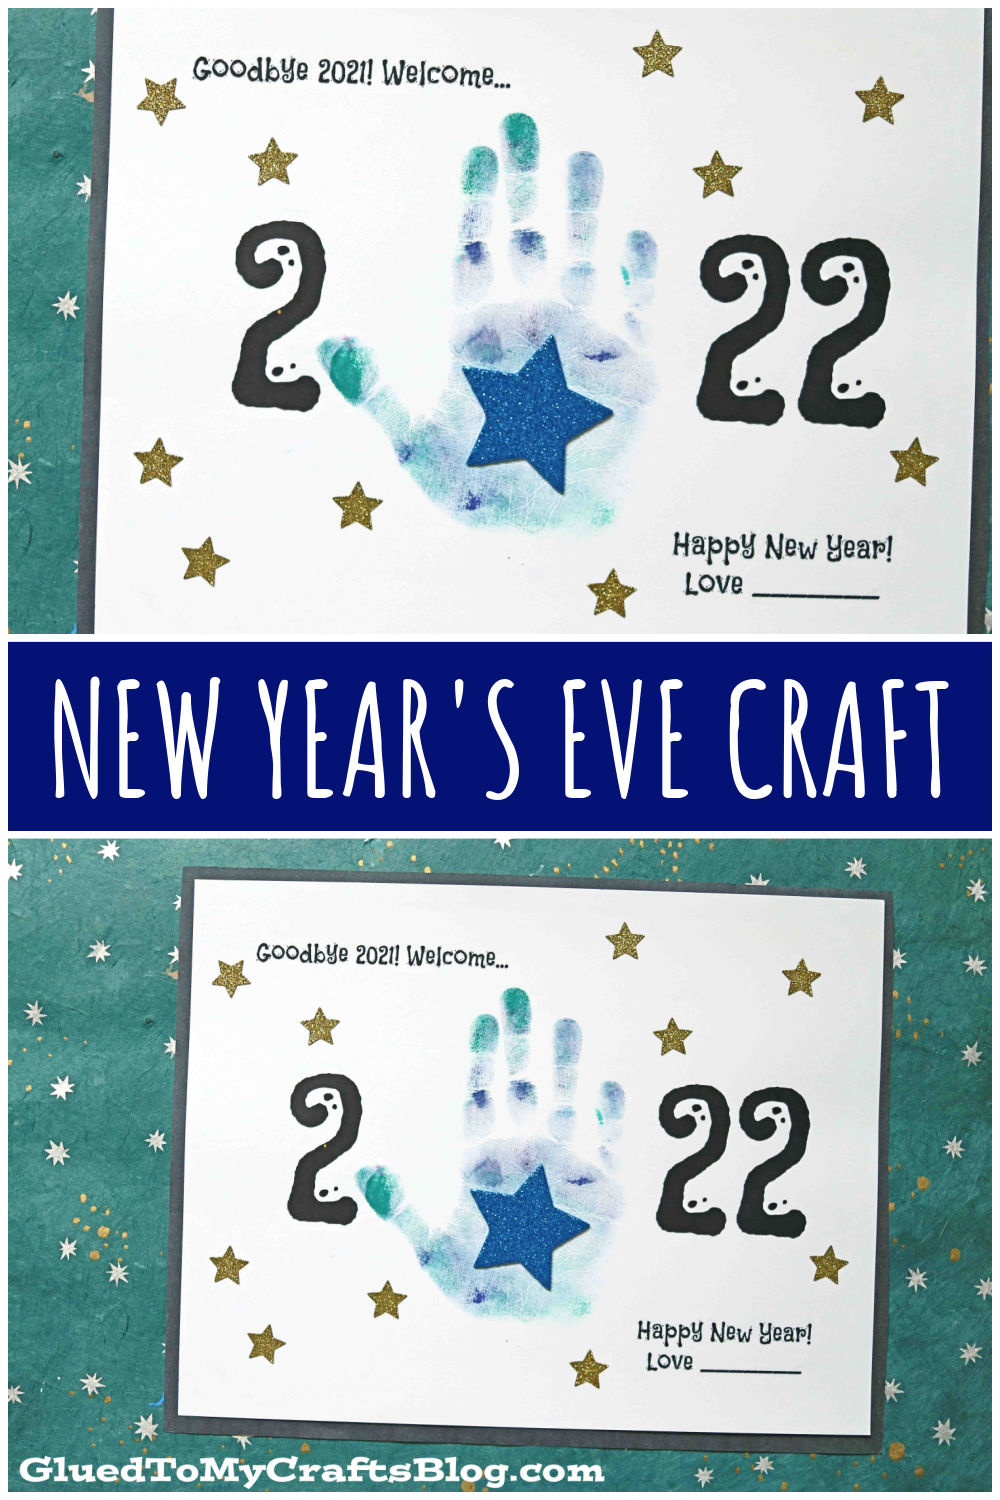 Handprint Keepsake Idea For New Year's Eve - UPDATED FOR 2022